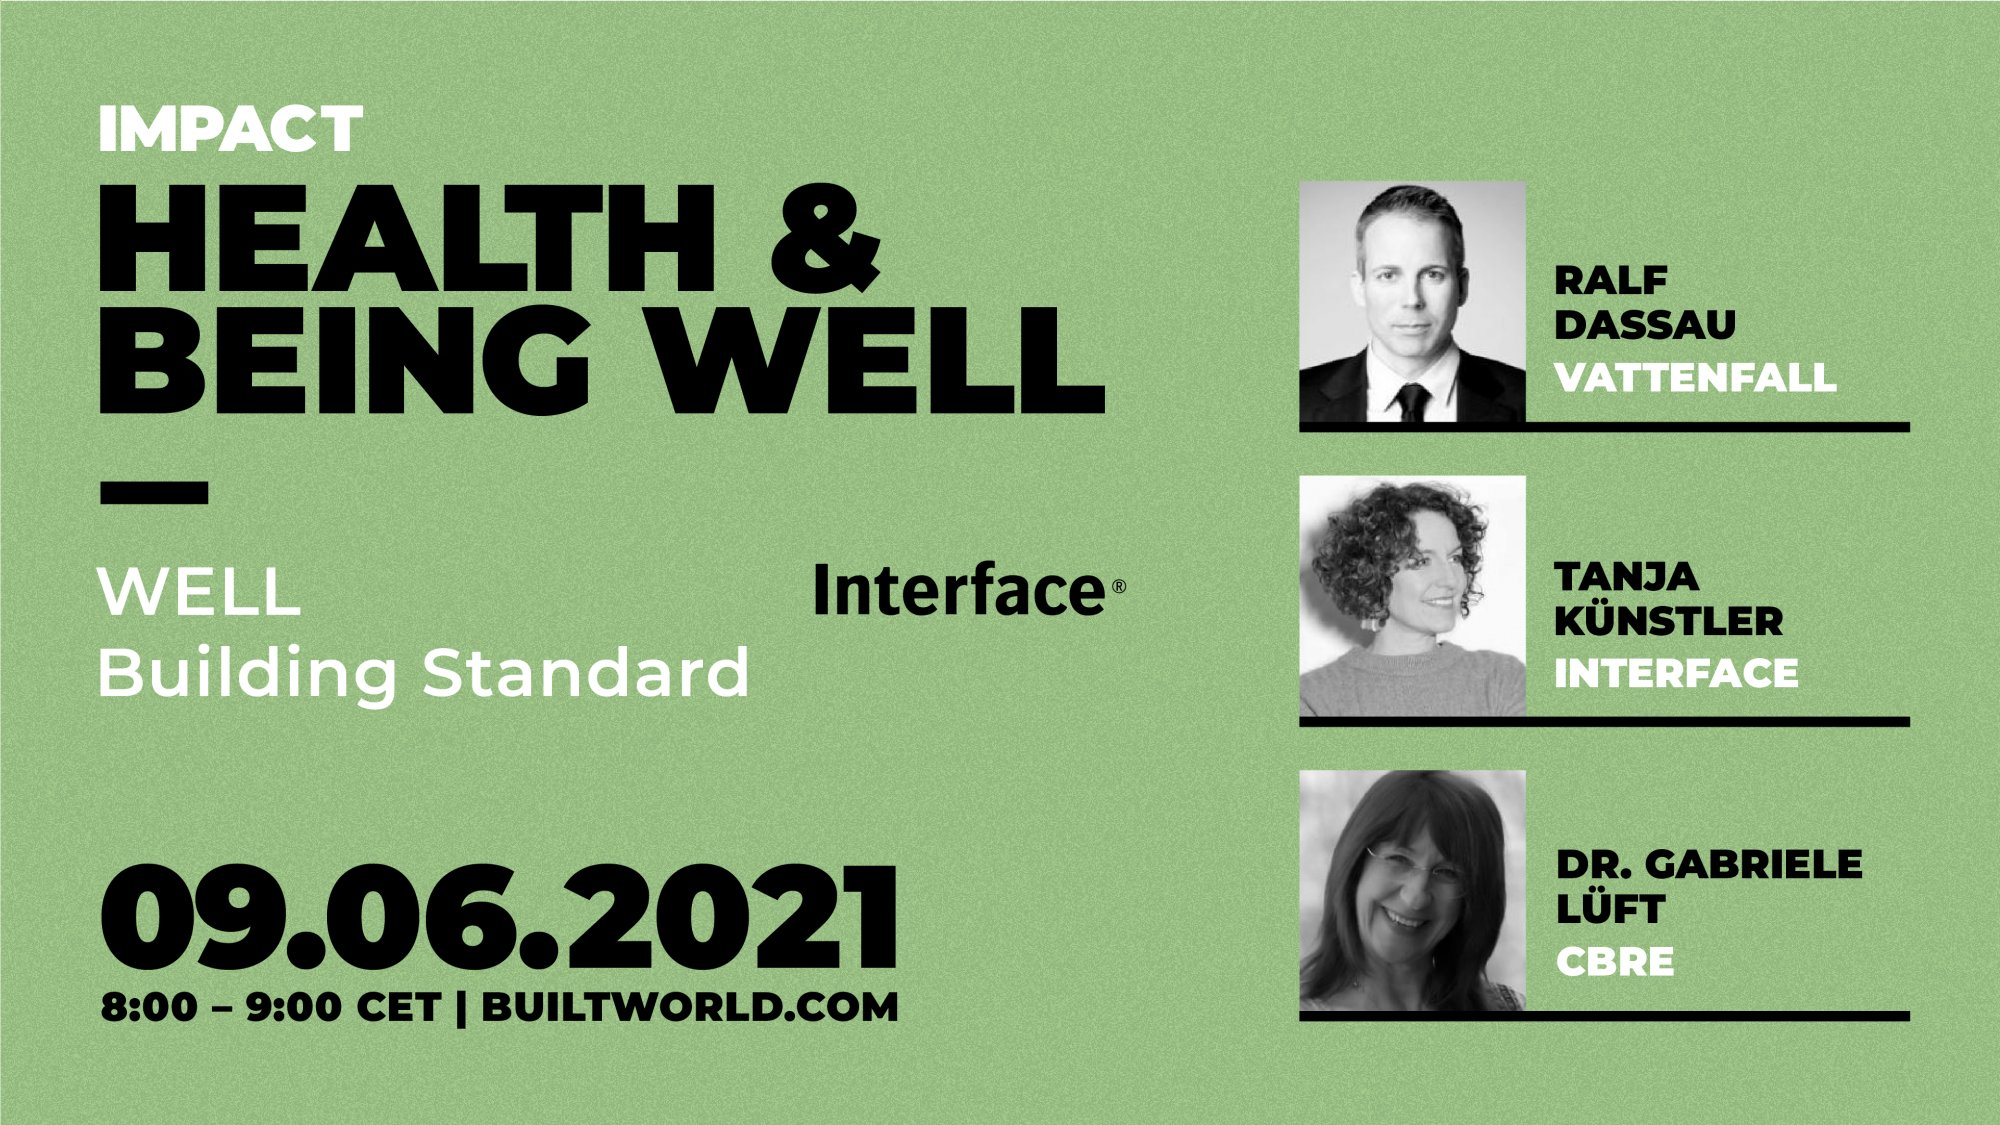 health-being-well-well-building-standard